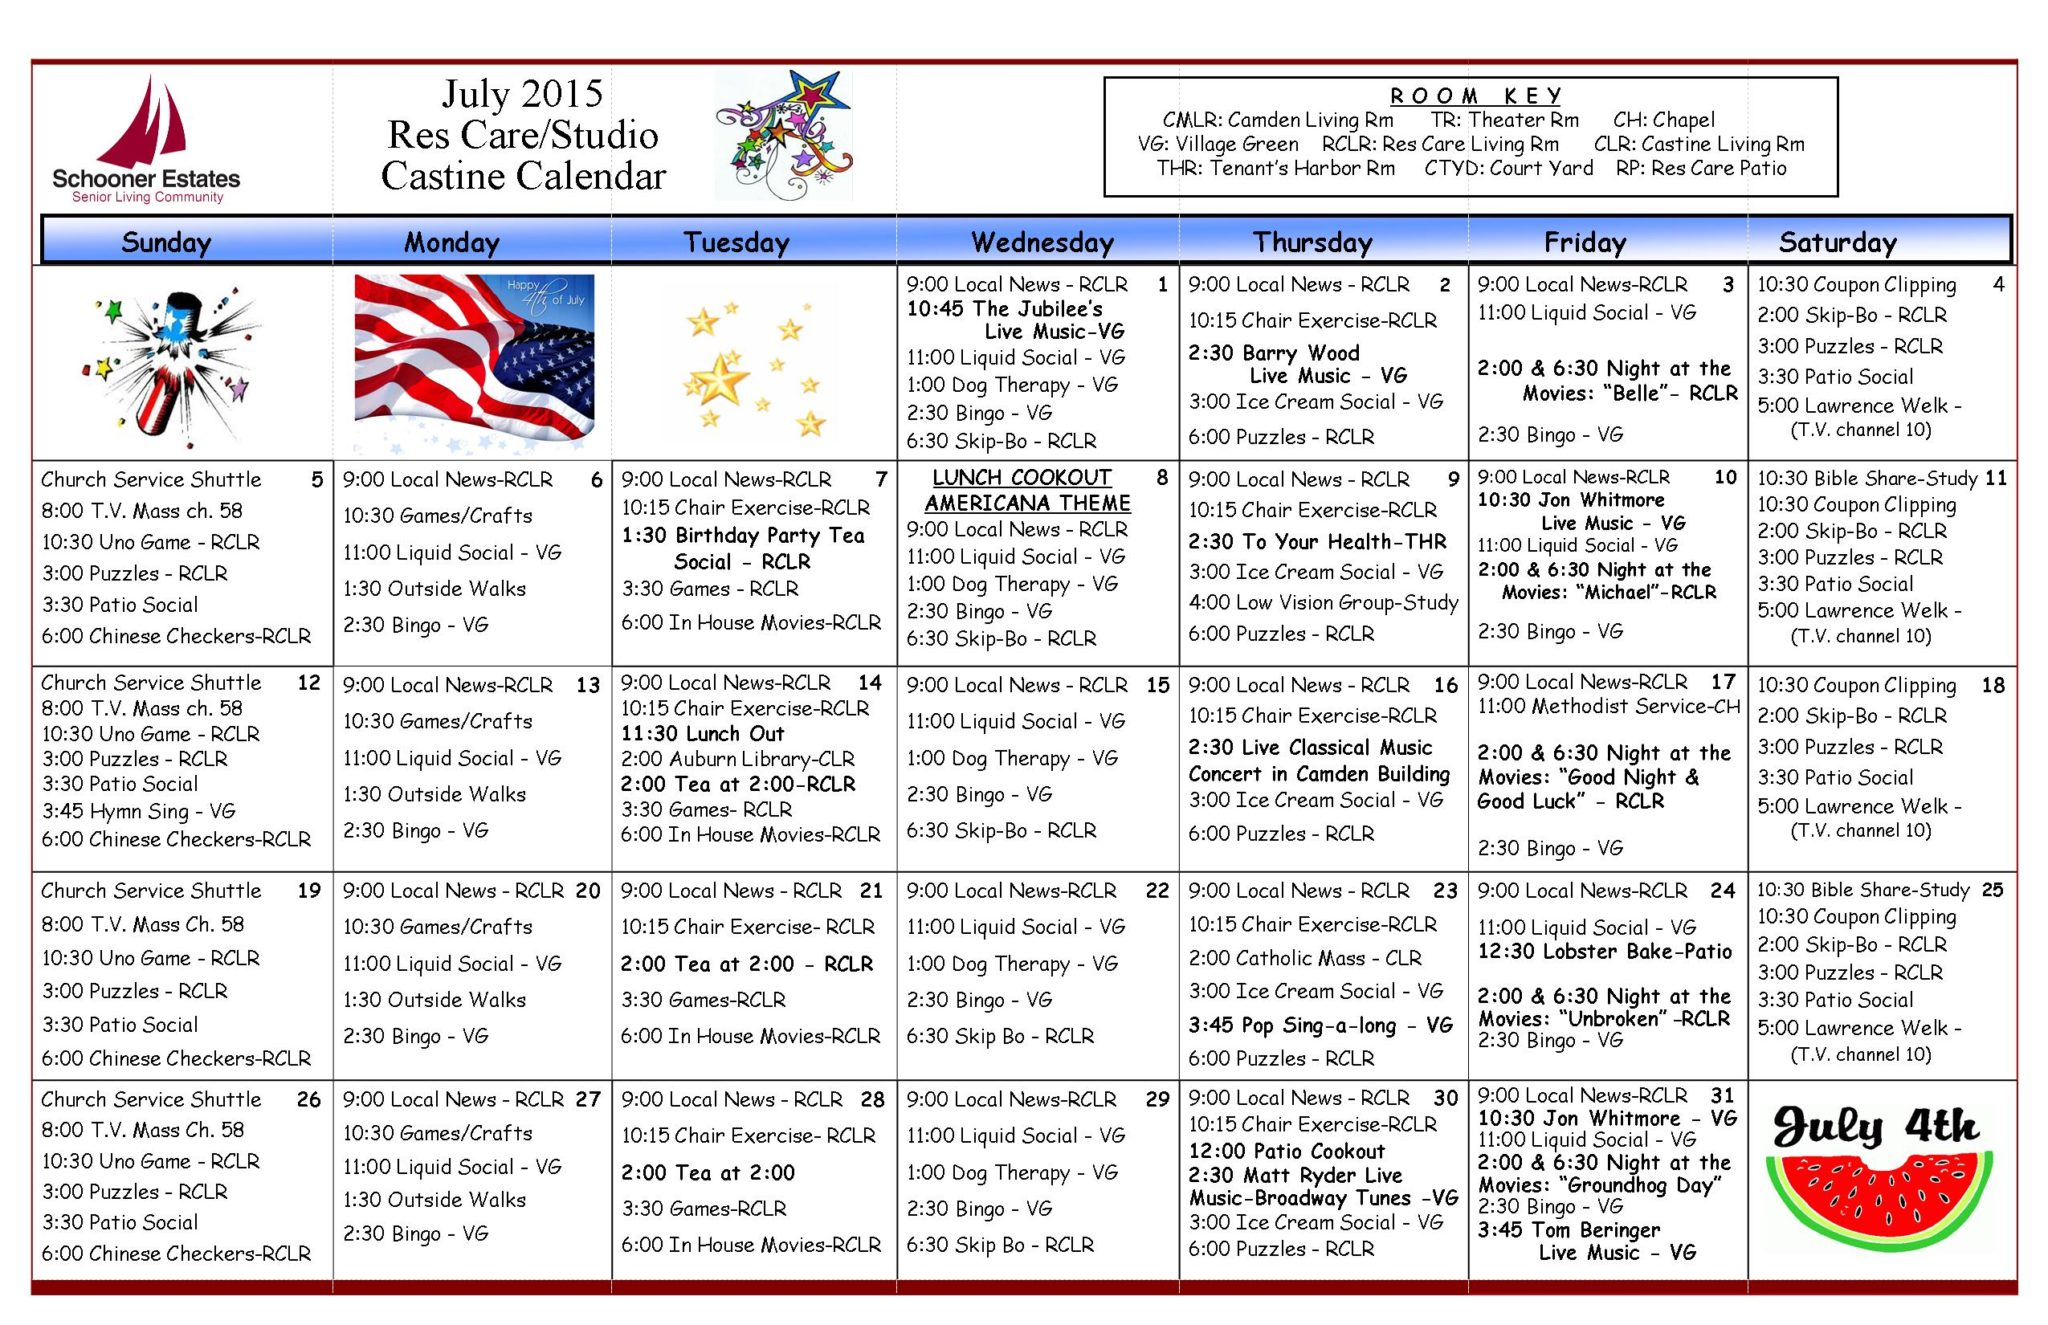 July 2015 Assisted Living and Residential Care Activity Calendar